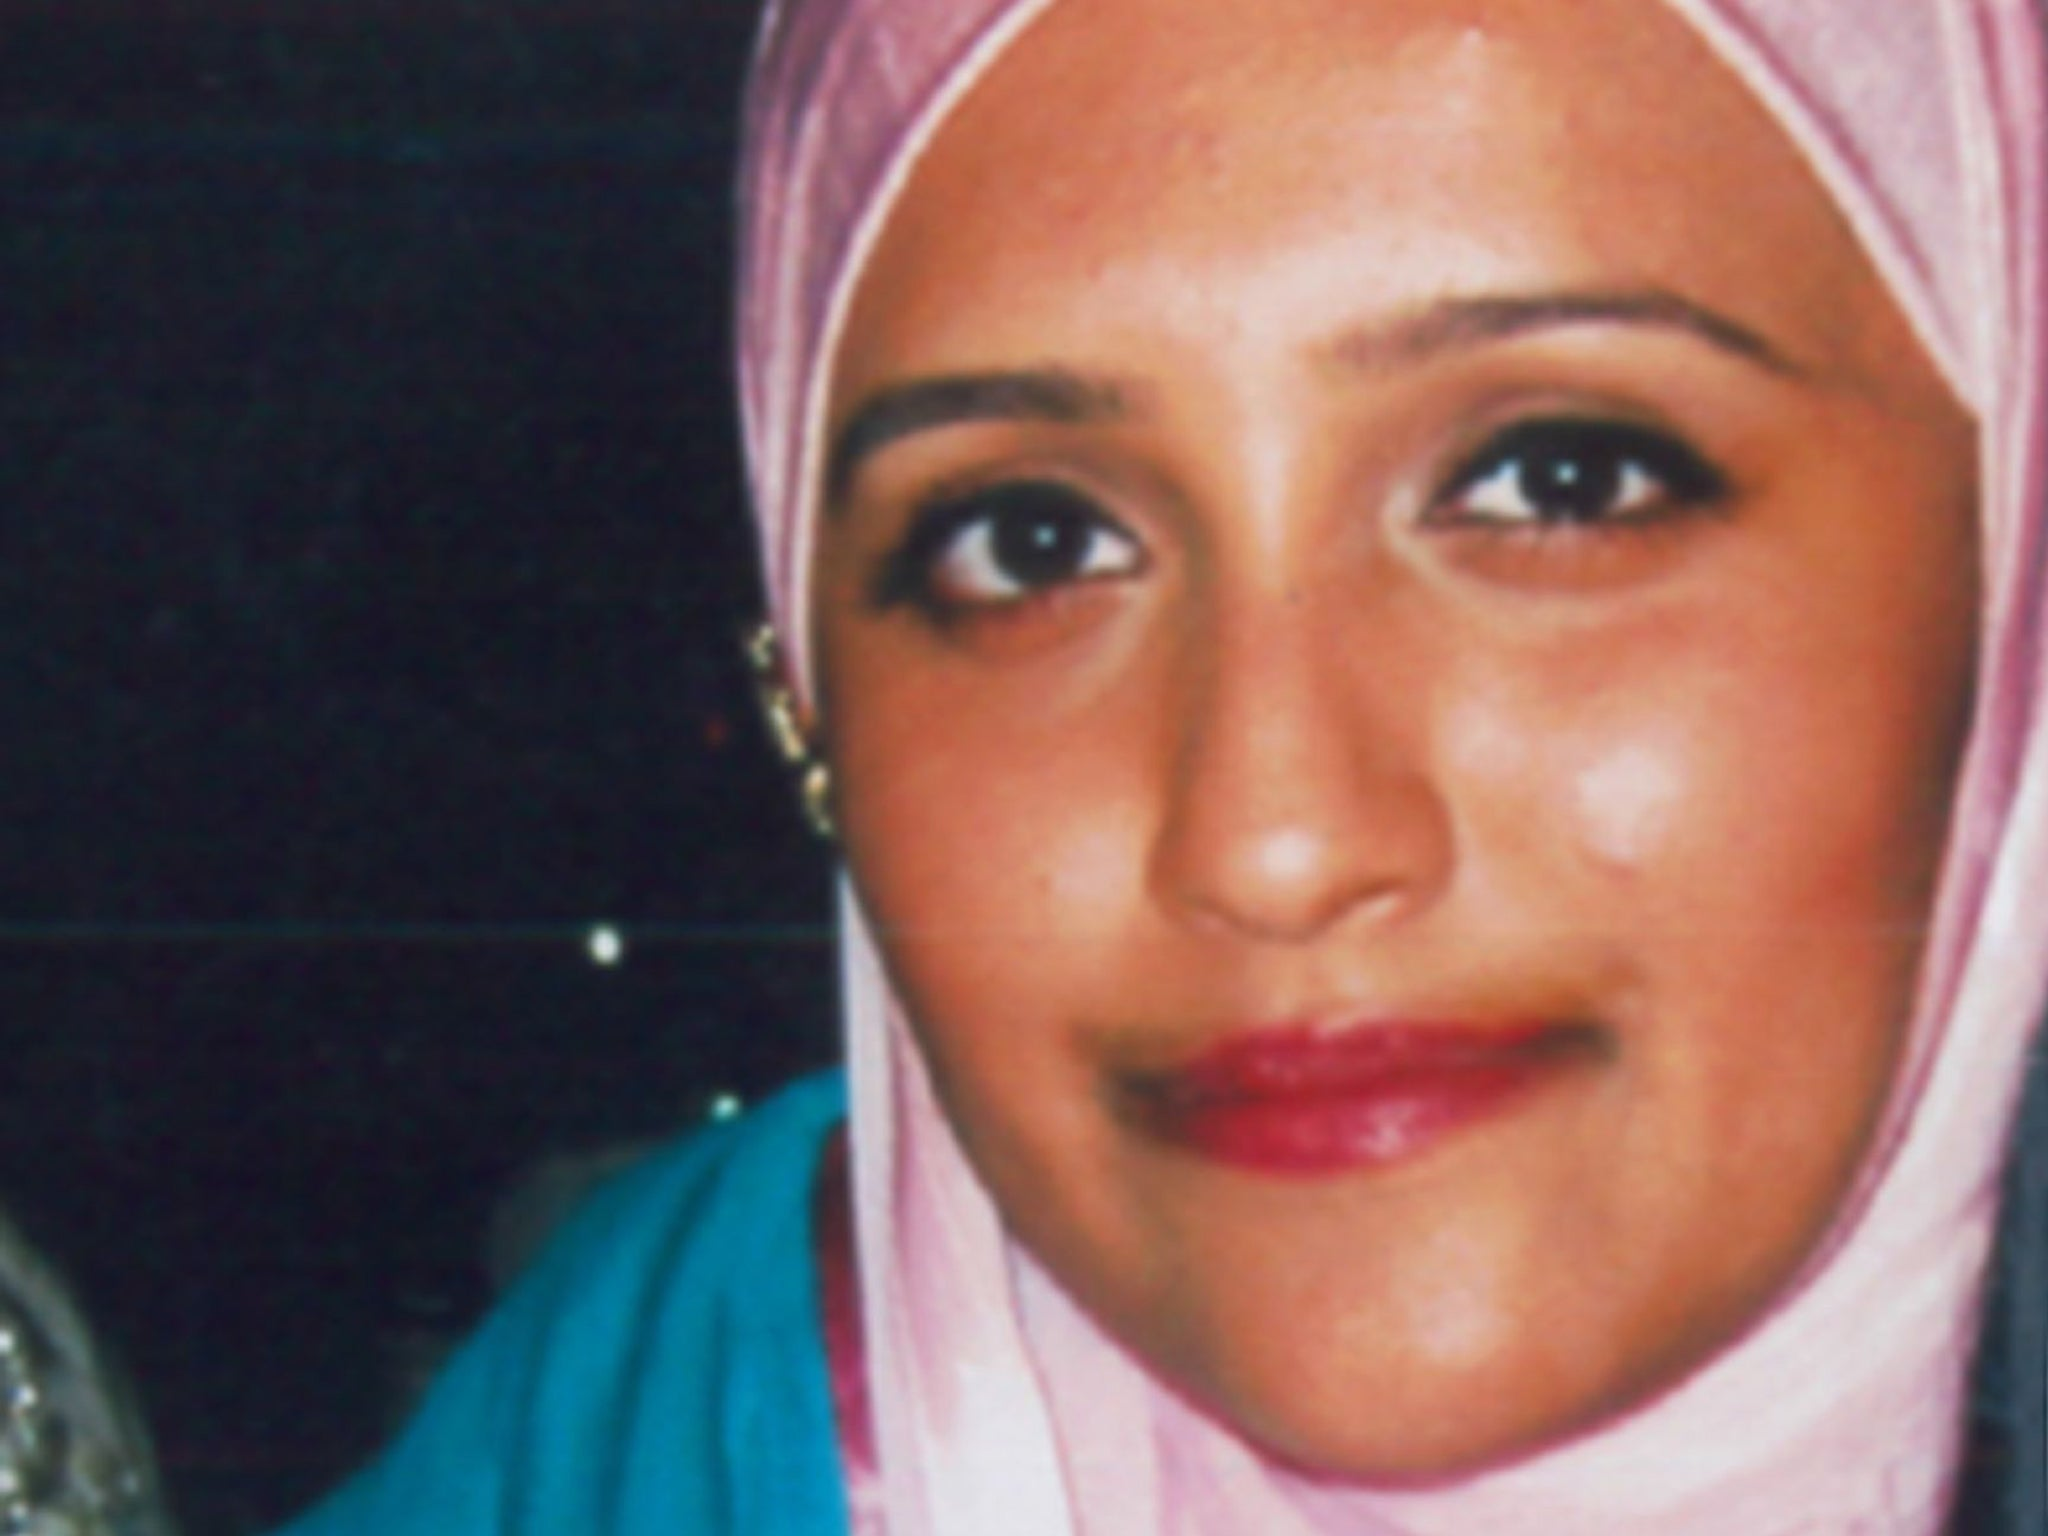 Aqsa Mahmood branded a 'disgrace' by her parents after claims she recruited three UK girls flying to Middle East